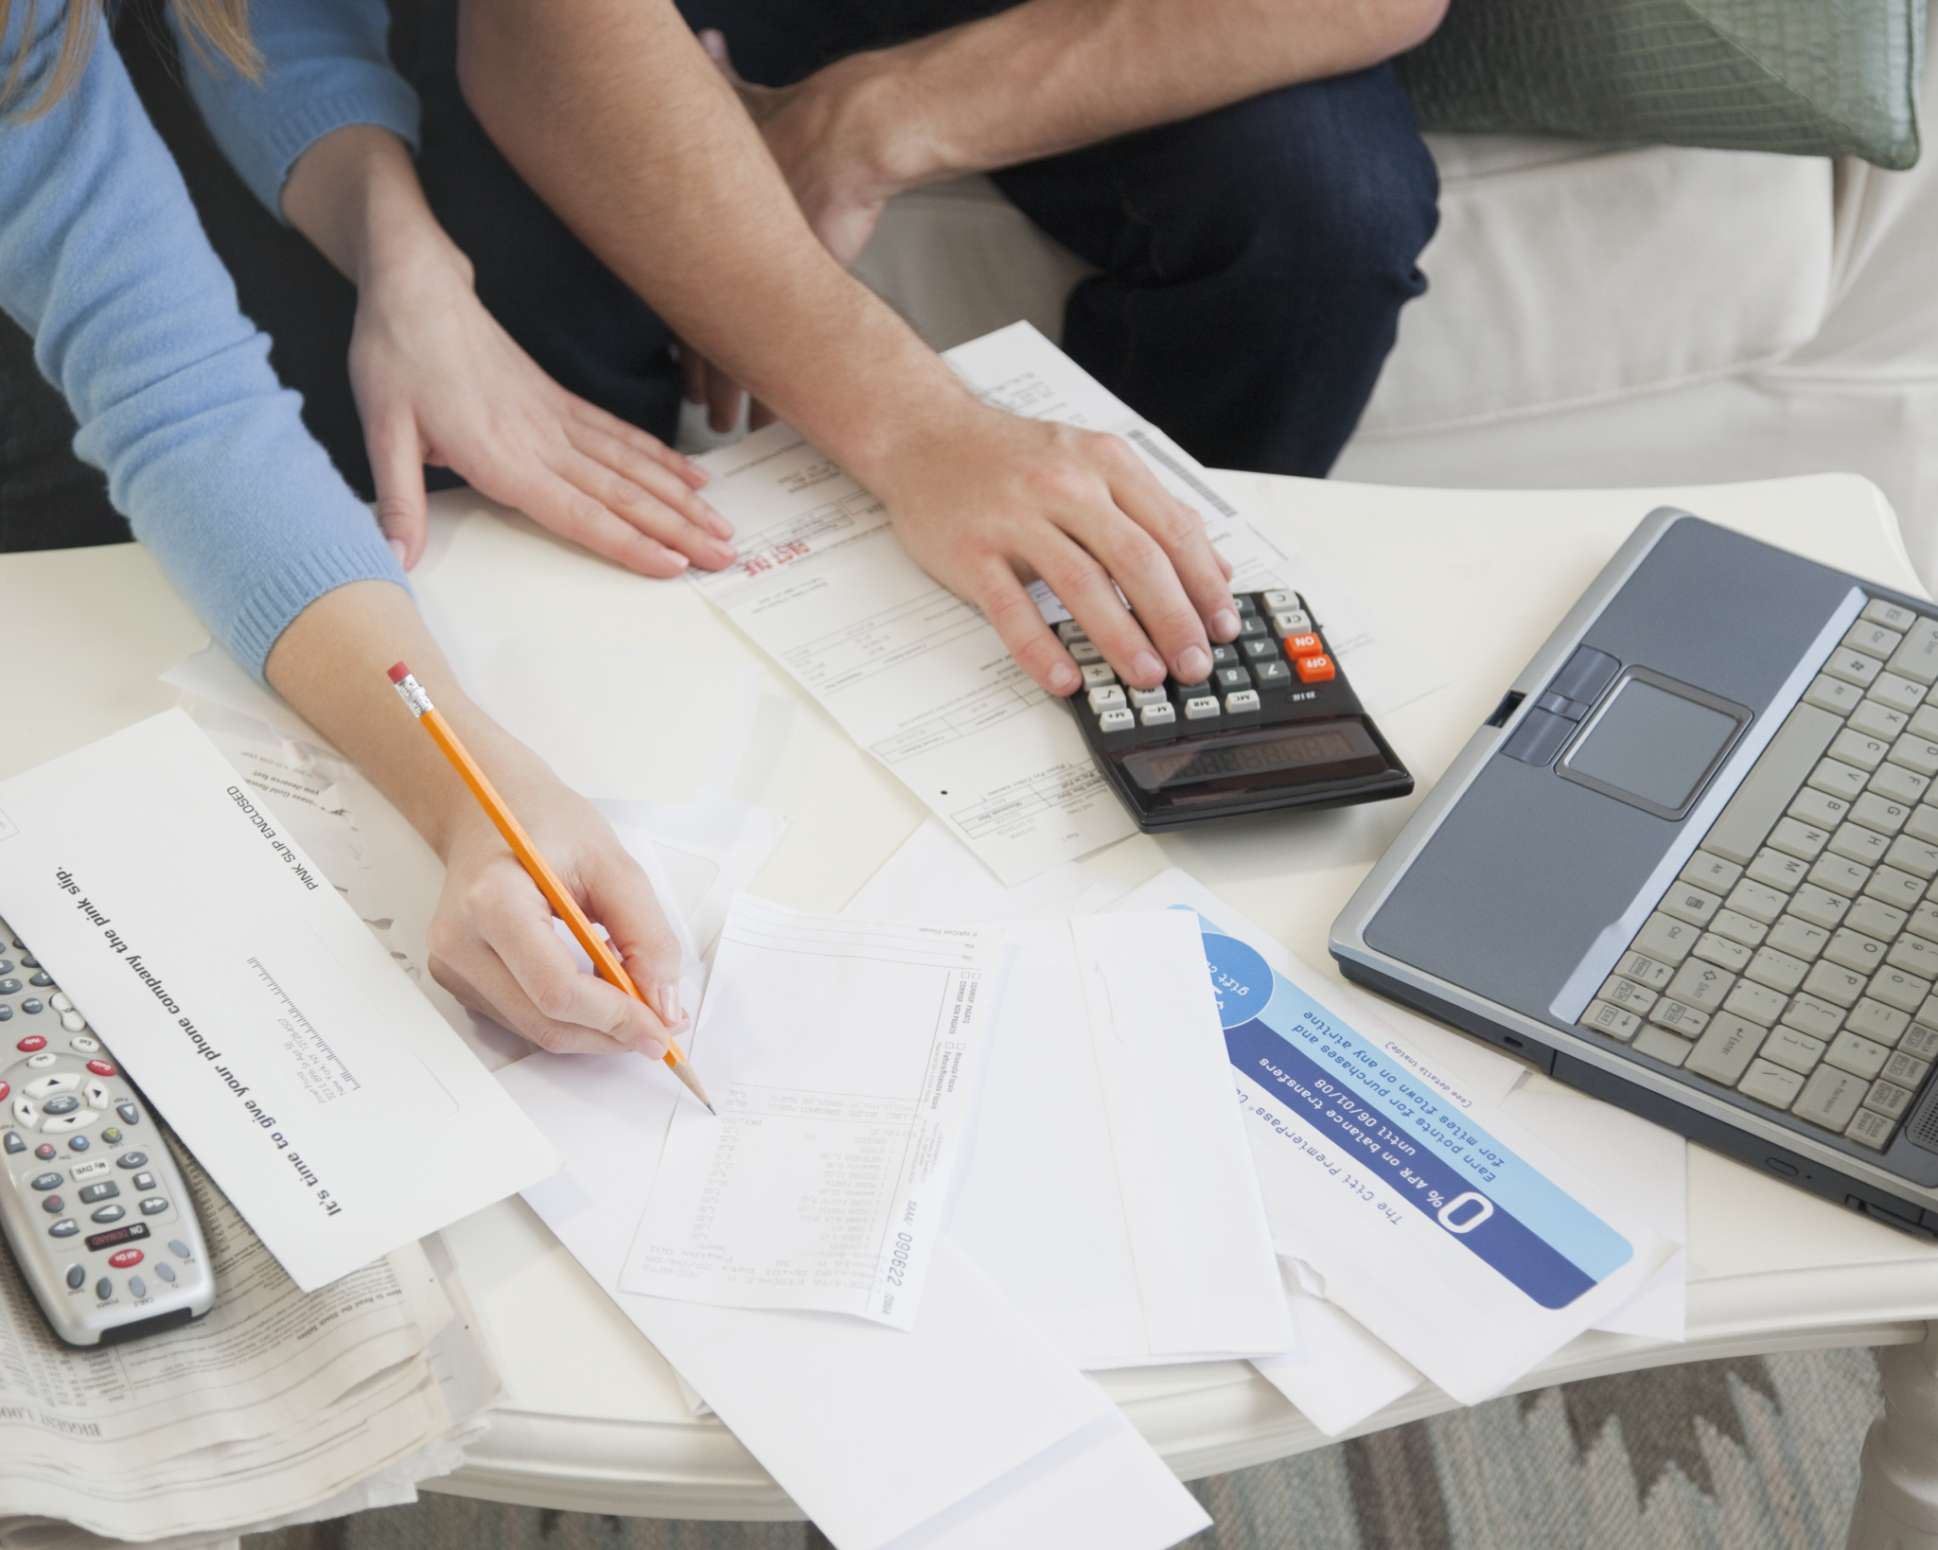 Hands of a couple doing paperwork and going over finances at a computer